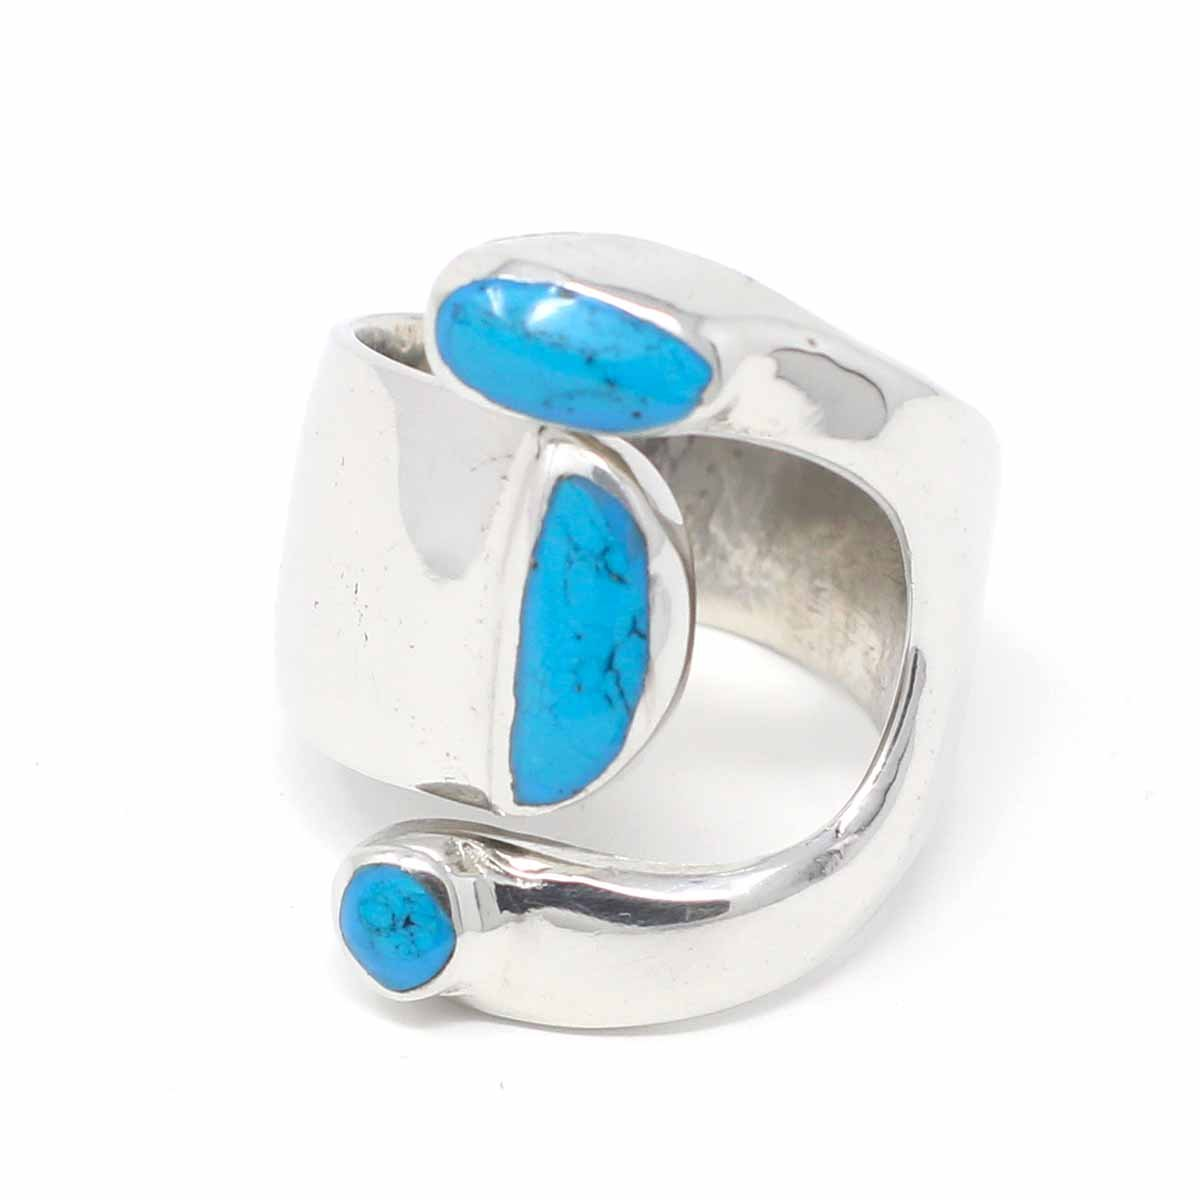 Alpaca Silver Wrap Ring, Turquoise - Size 7